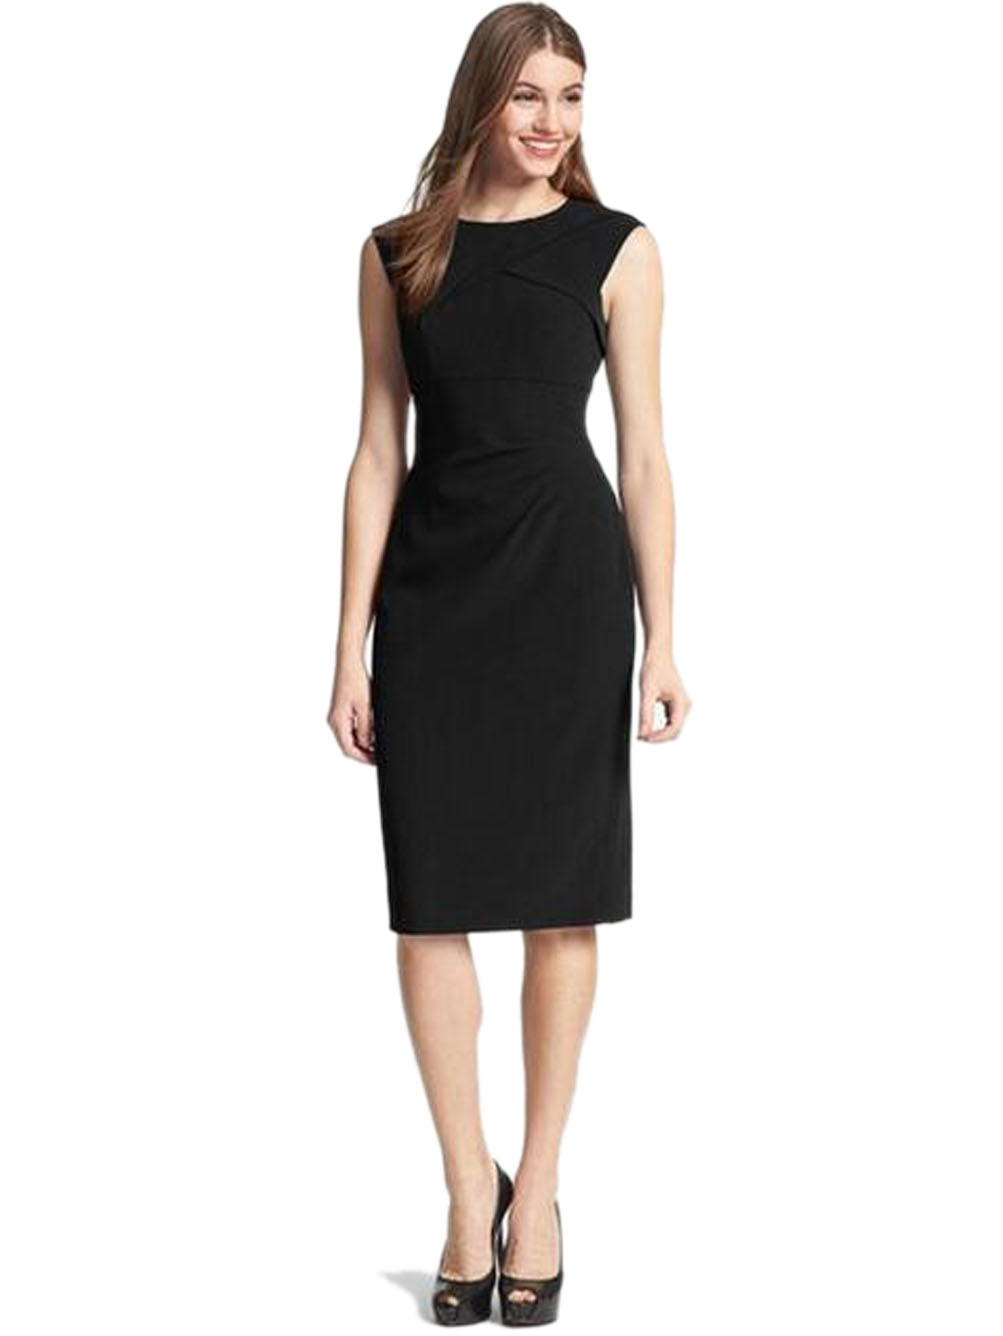 dc873ee163a Classy Dresses For Work - Gomes Weine AG